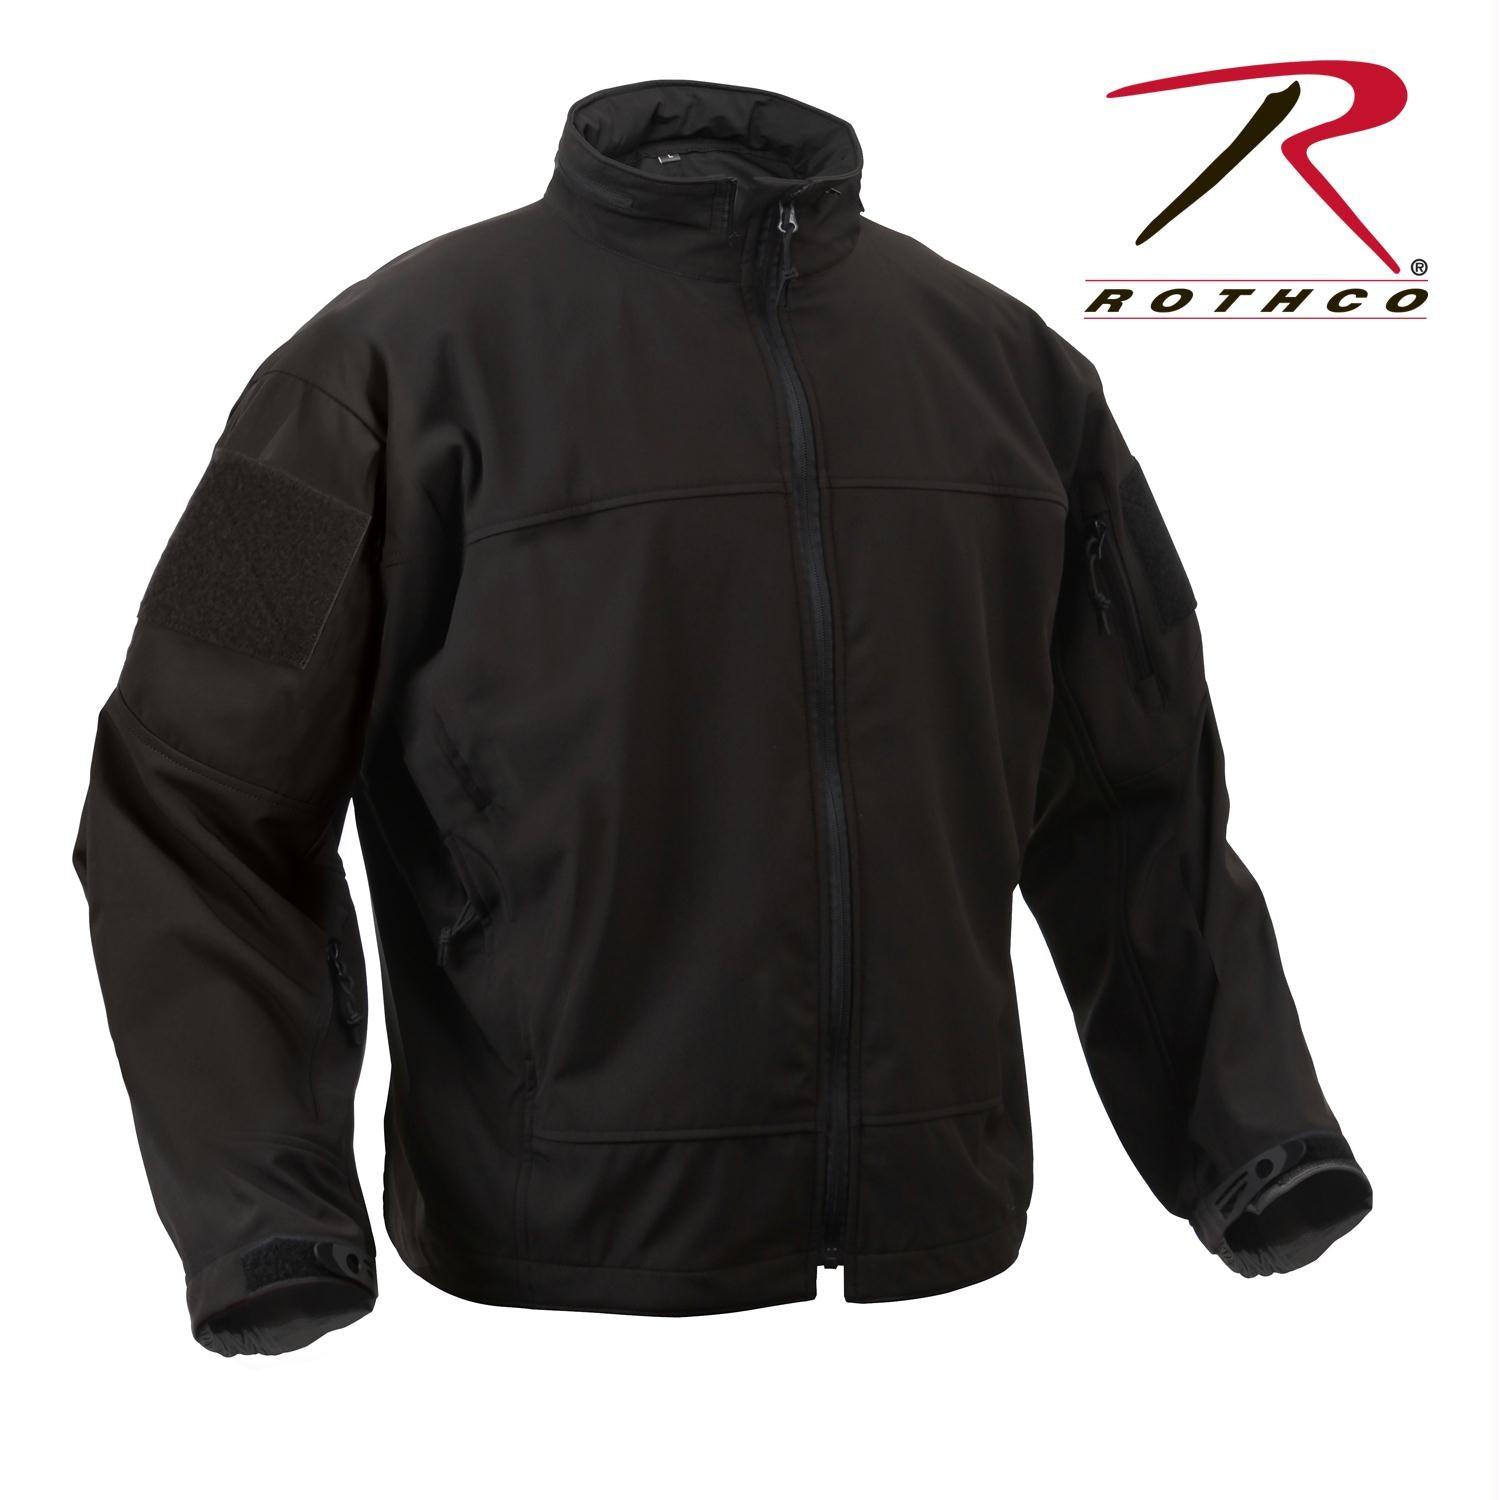 Rothco Covert Ops Light Weight Soft Shell Jacket - Black / 2XL